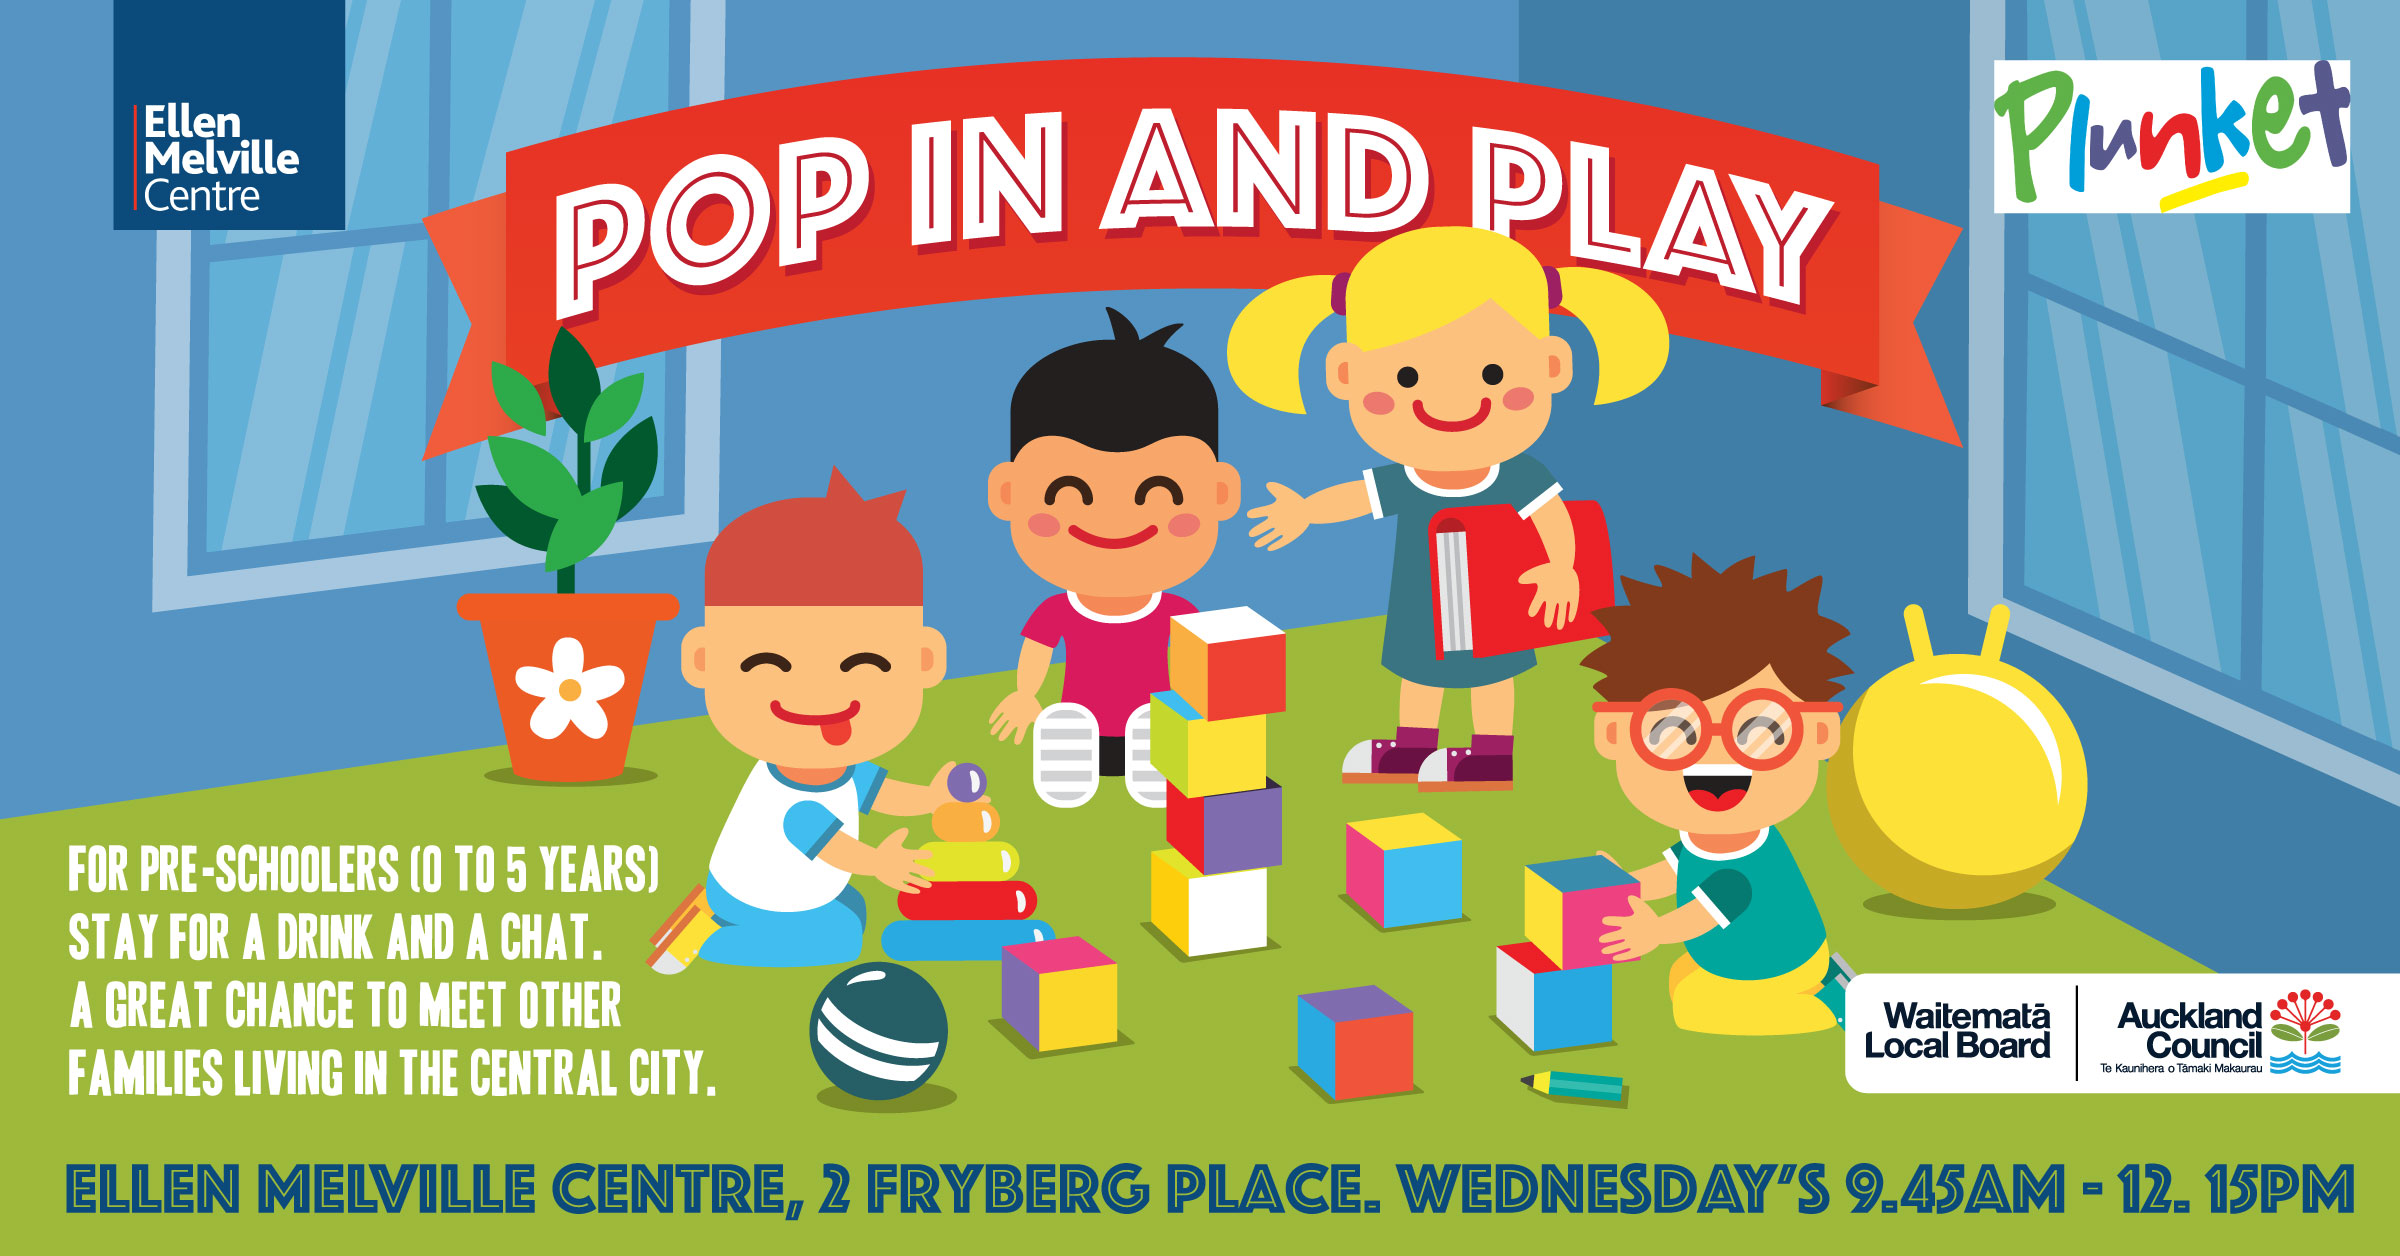 Plunket Pop In And Play